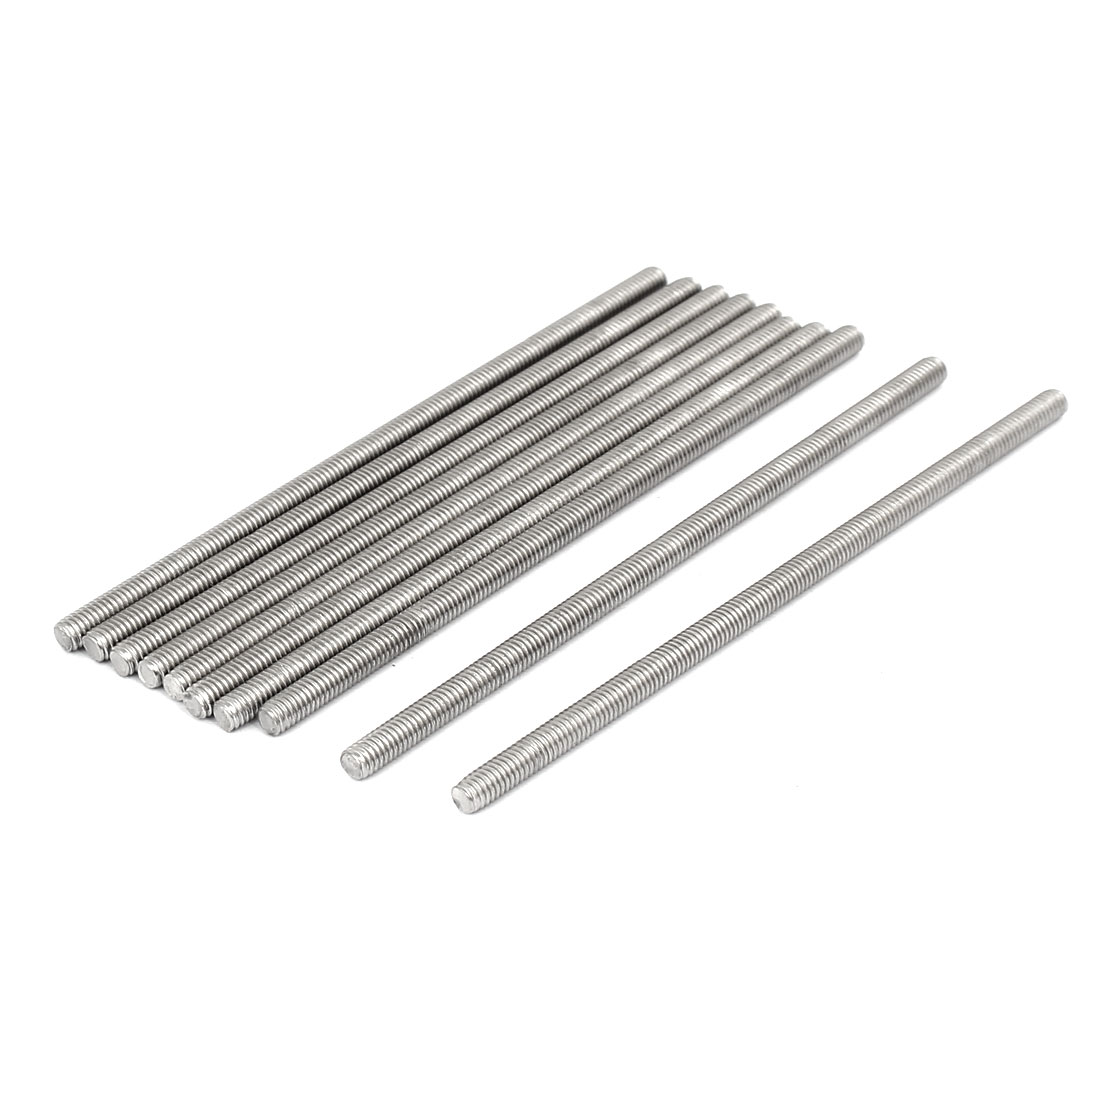 M4 x 100mm 304 Stainless Steel Fully Threaded Rod Bar Studs Fastener 10 Pcs